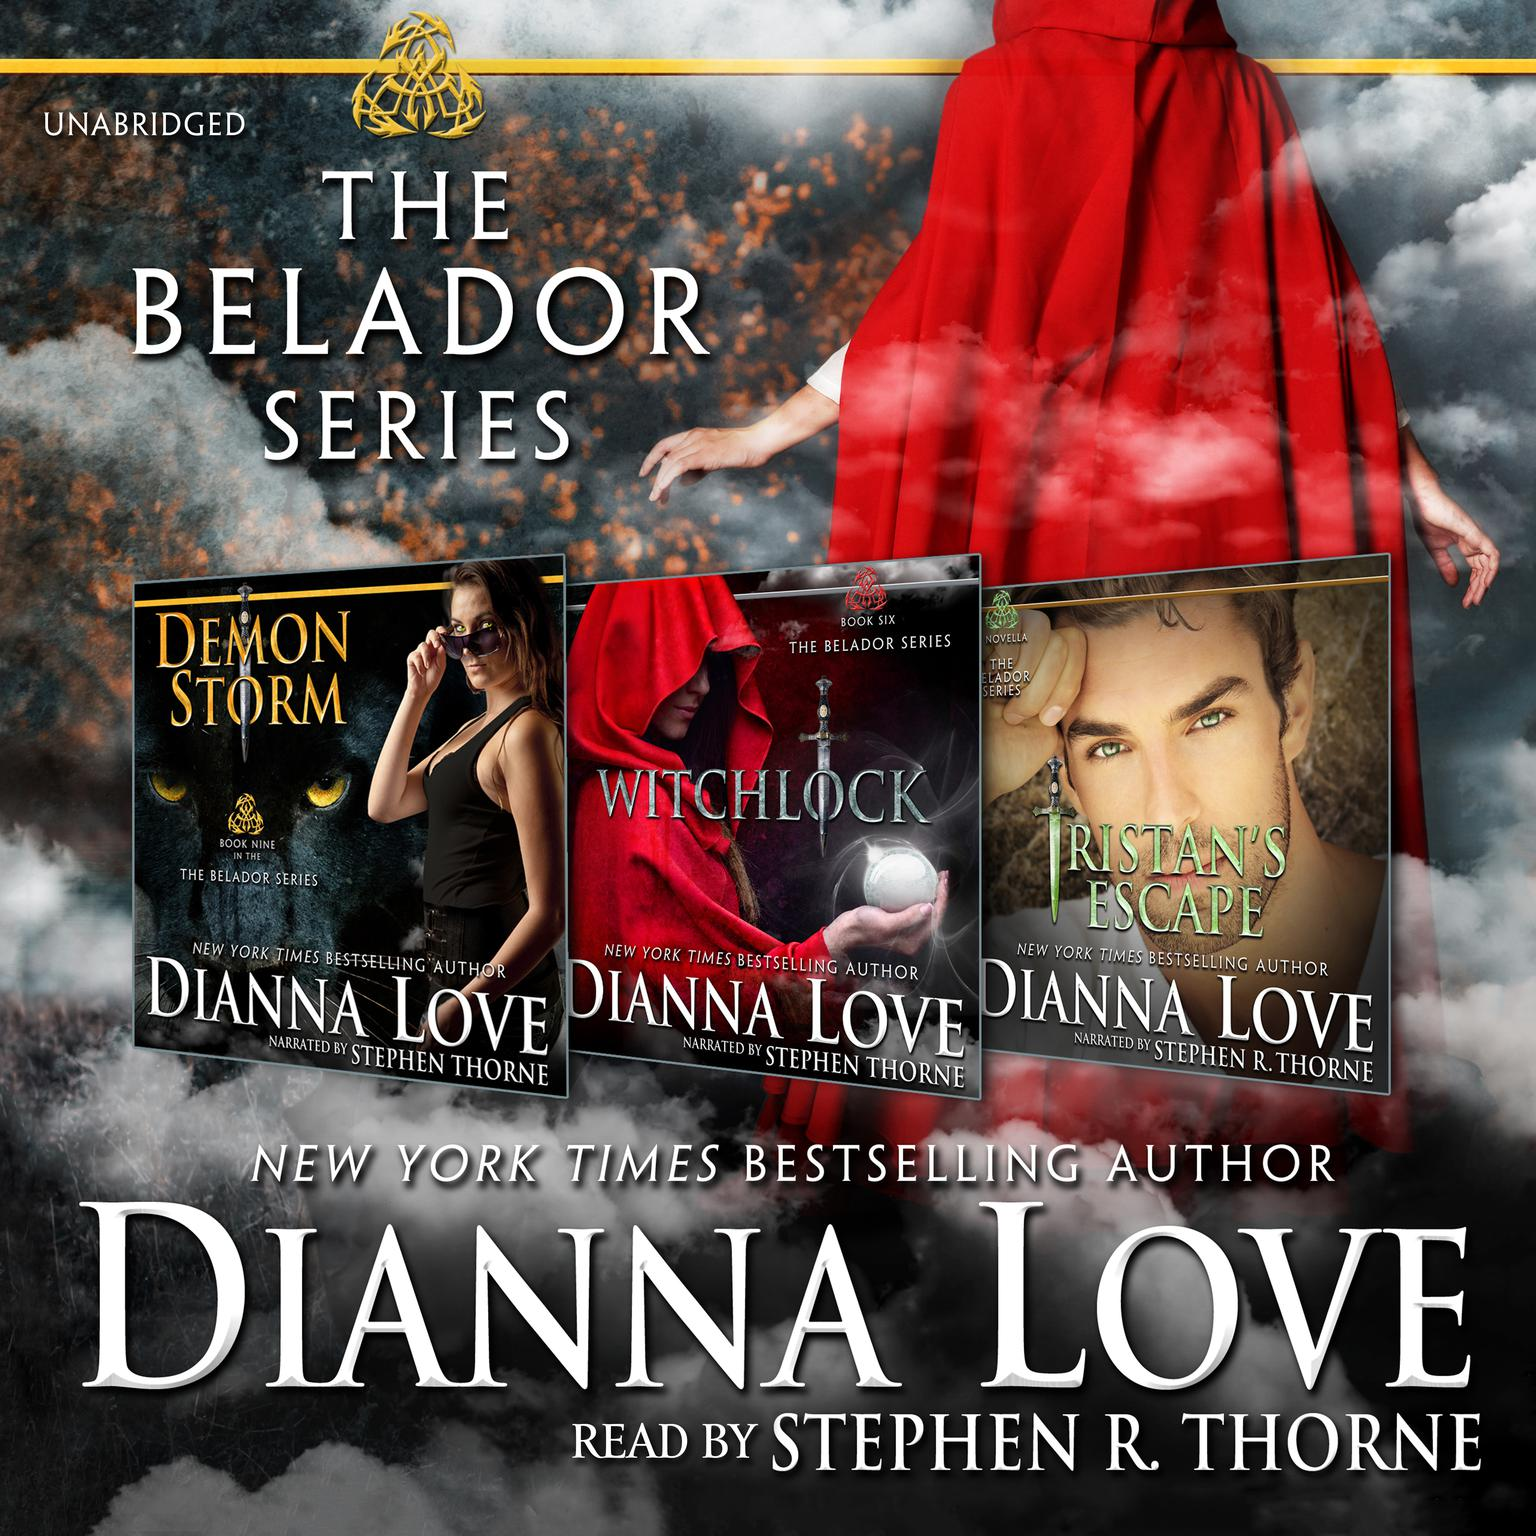 Printable The Belador Series Box Set: Demon Storm, Witchlock, and Tristan's Escape Audiobook Cover Art